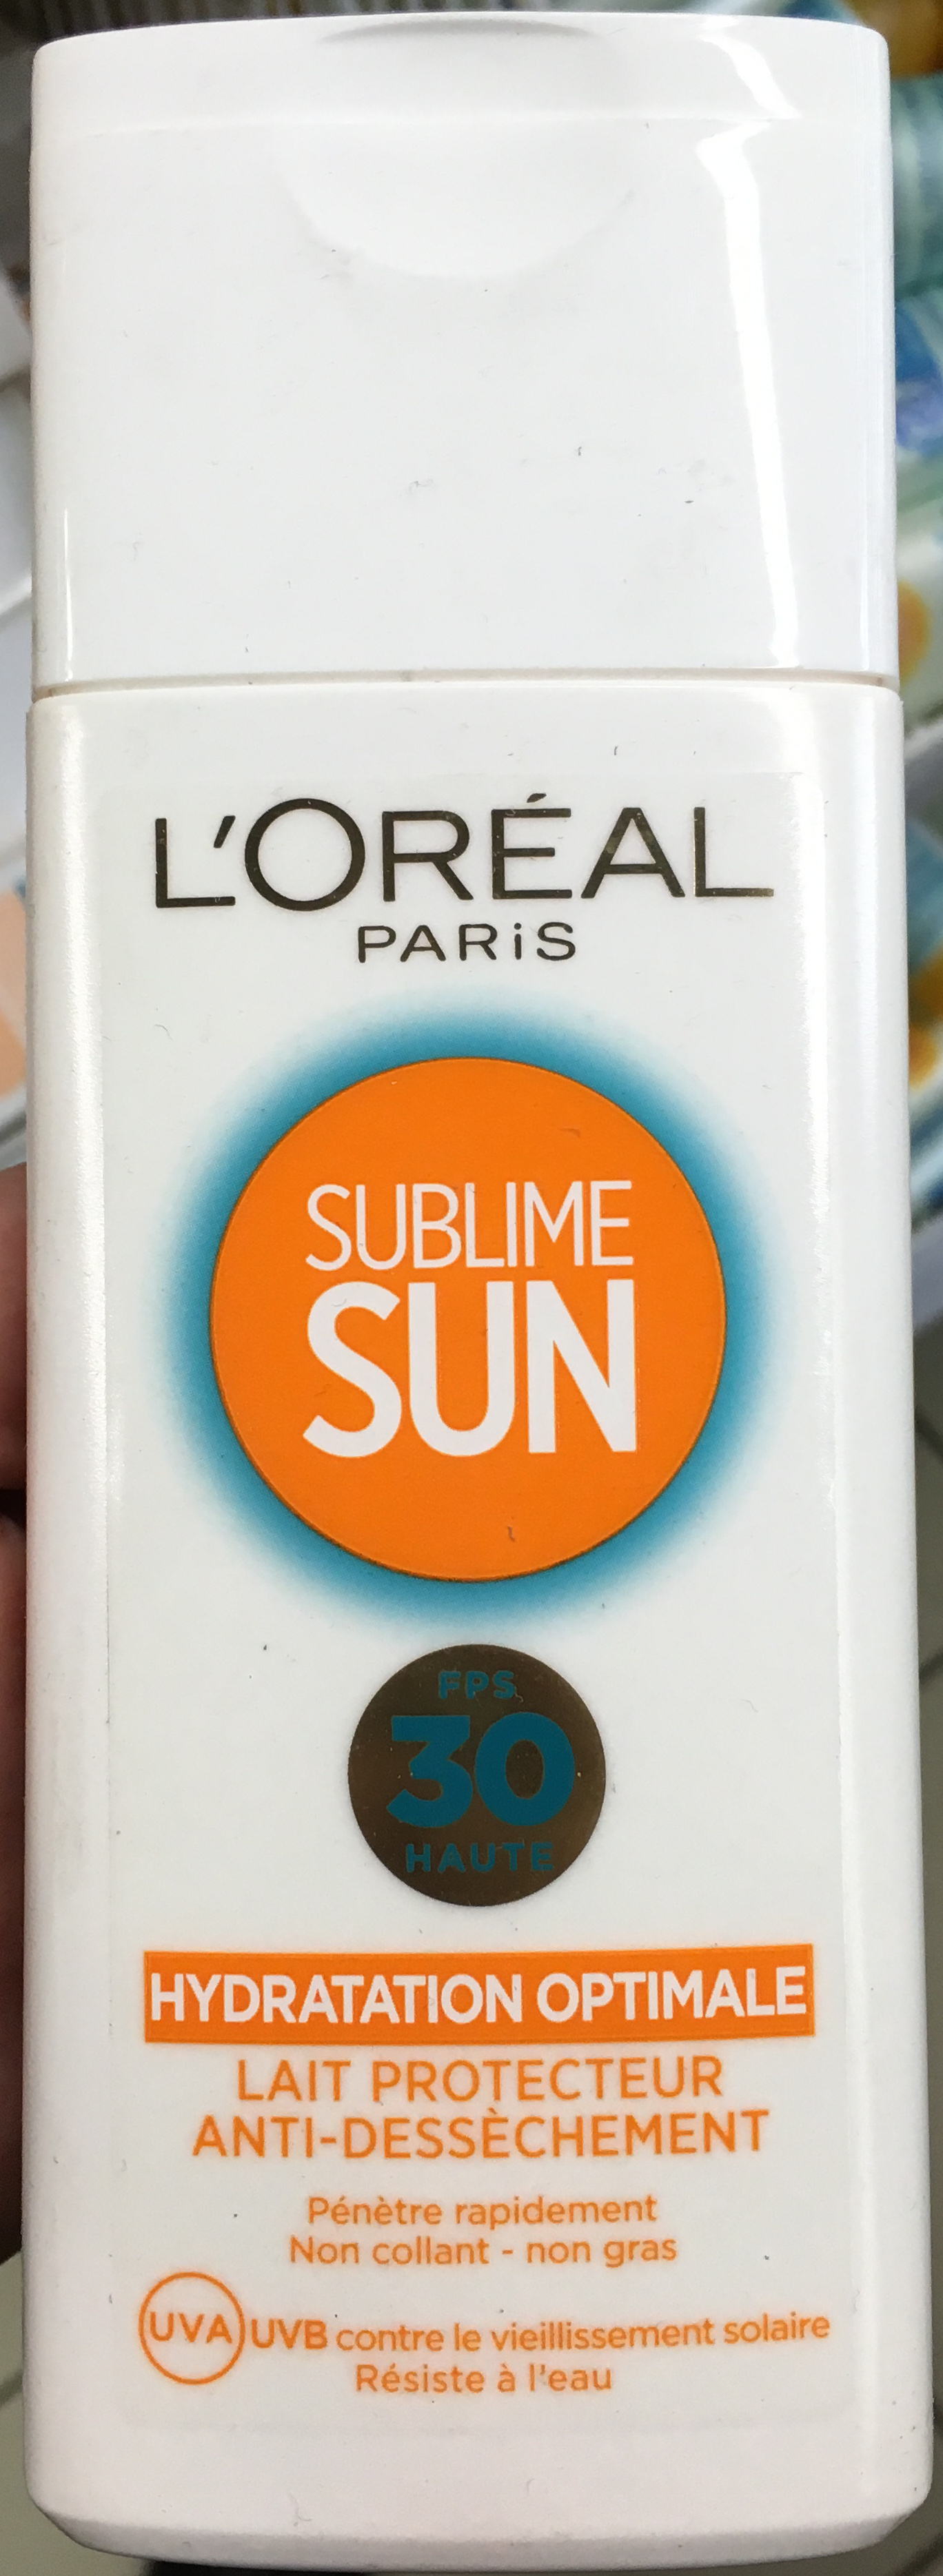 Sublime Sun Lait protecteur anti-dessèchement FPS 30 - Product - fr